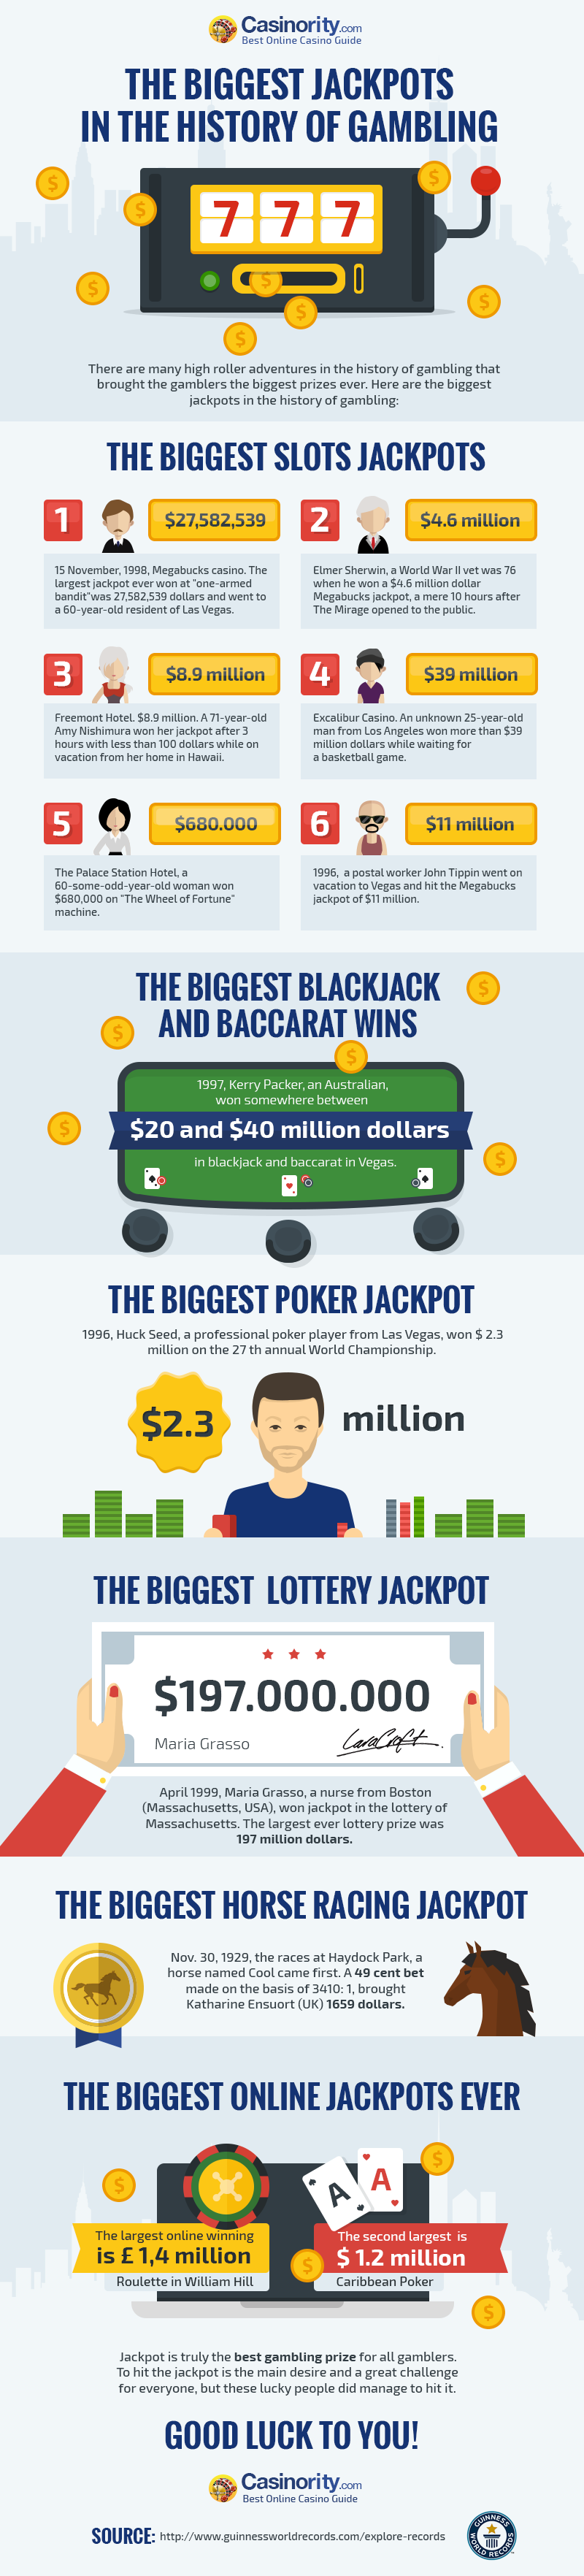 The Biggest Jackpots in the History of Gambling #infographic